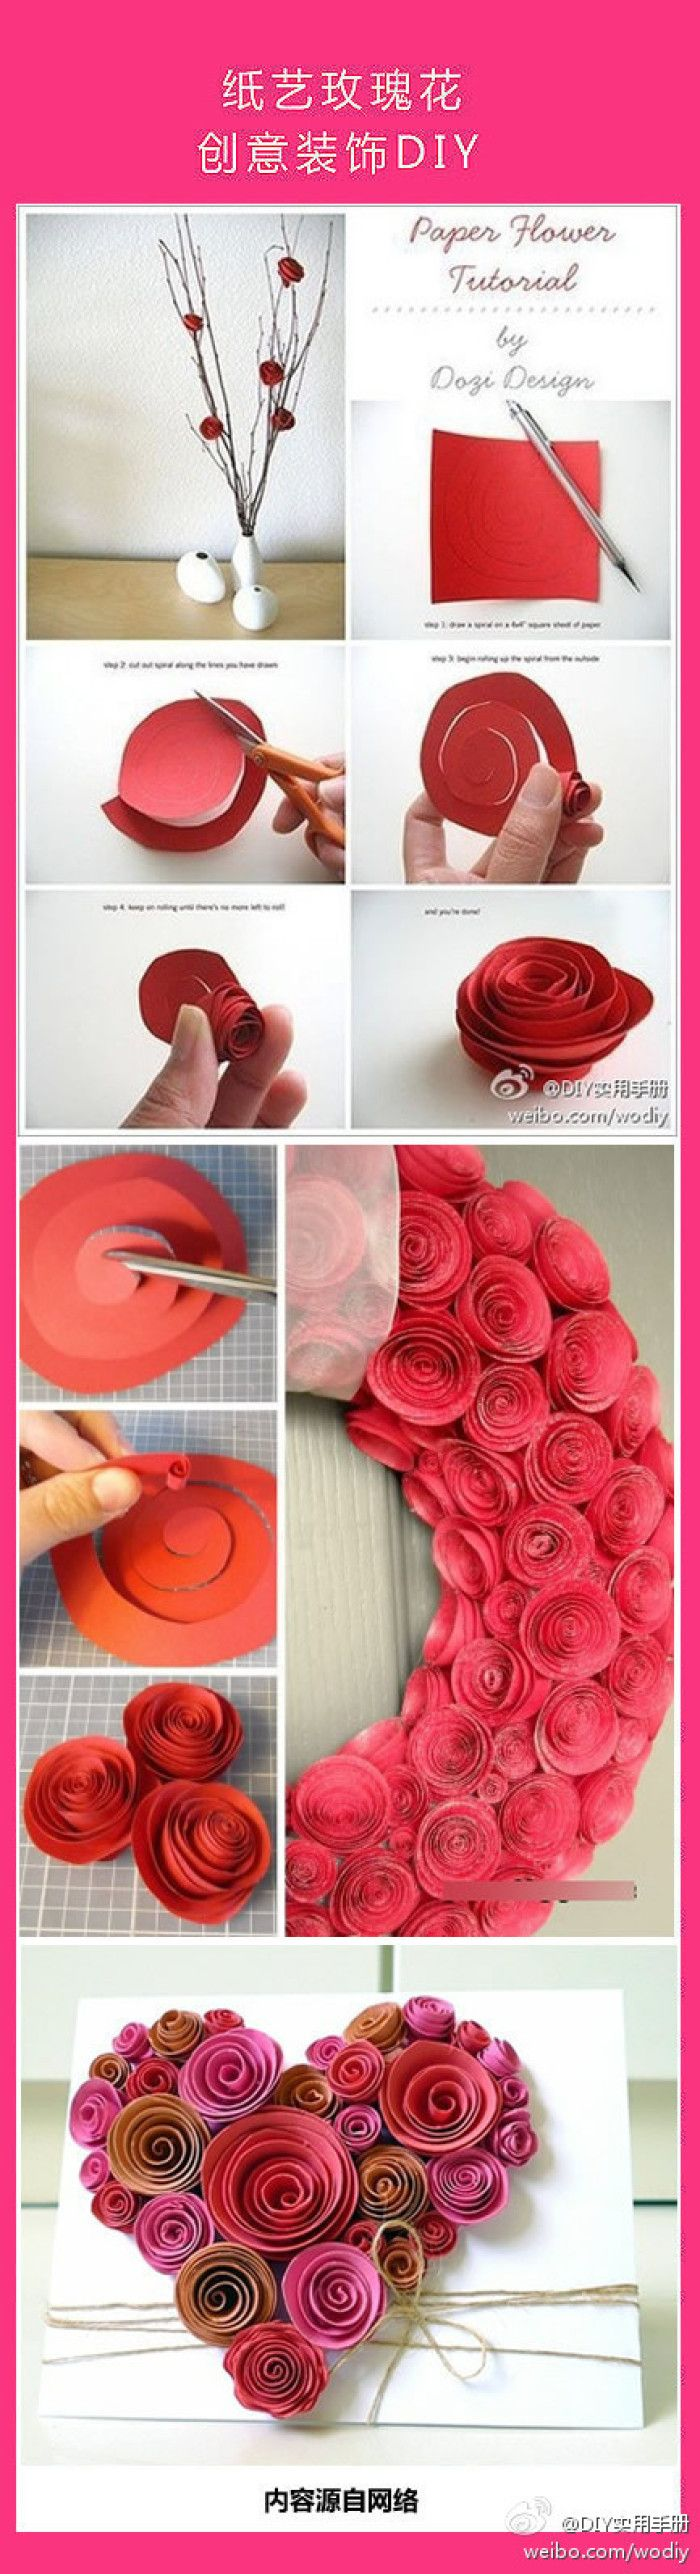 Pin By Iwona Malek On Hearts Flower Crafts Paper Flowers Crafts